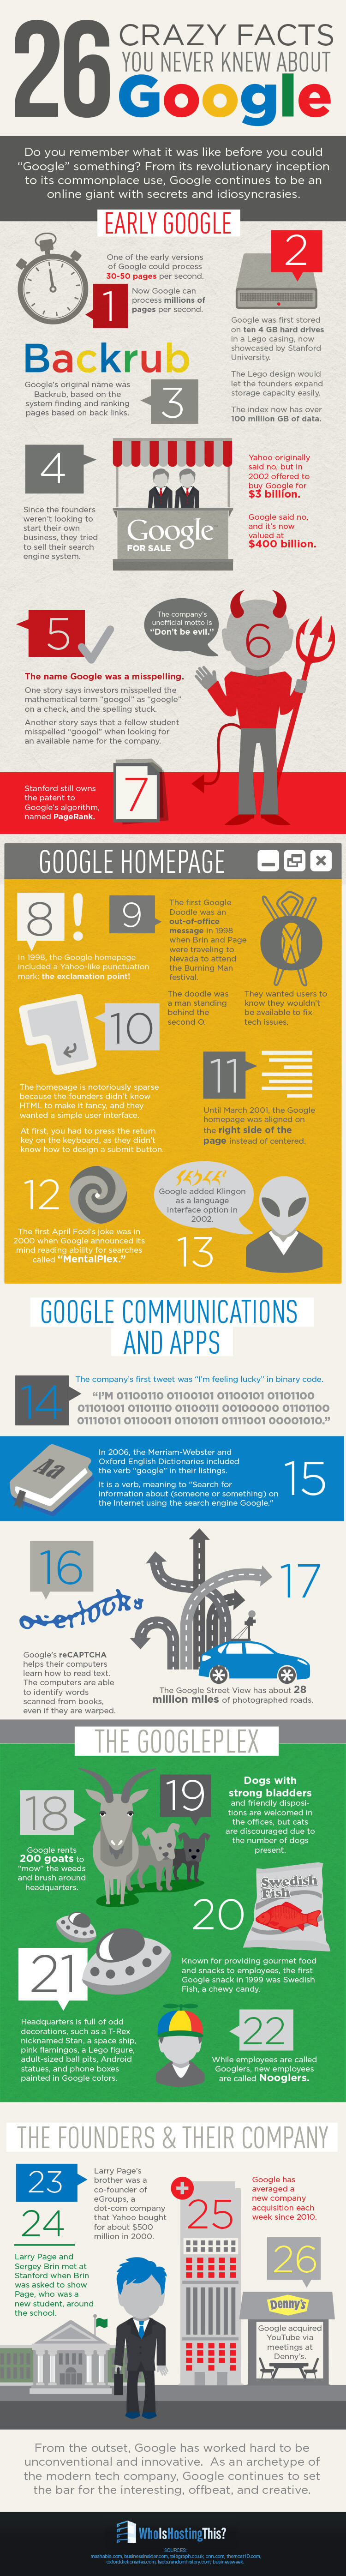 Infographic: 26 crazy facts about Google you probably never knew